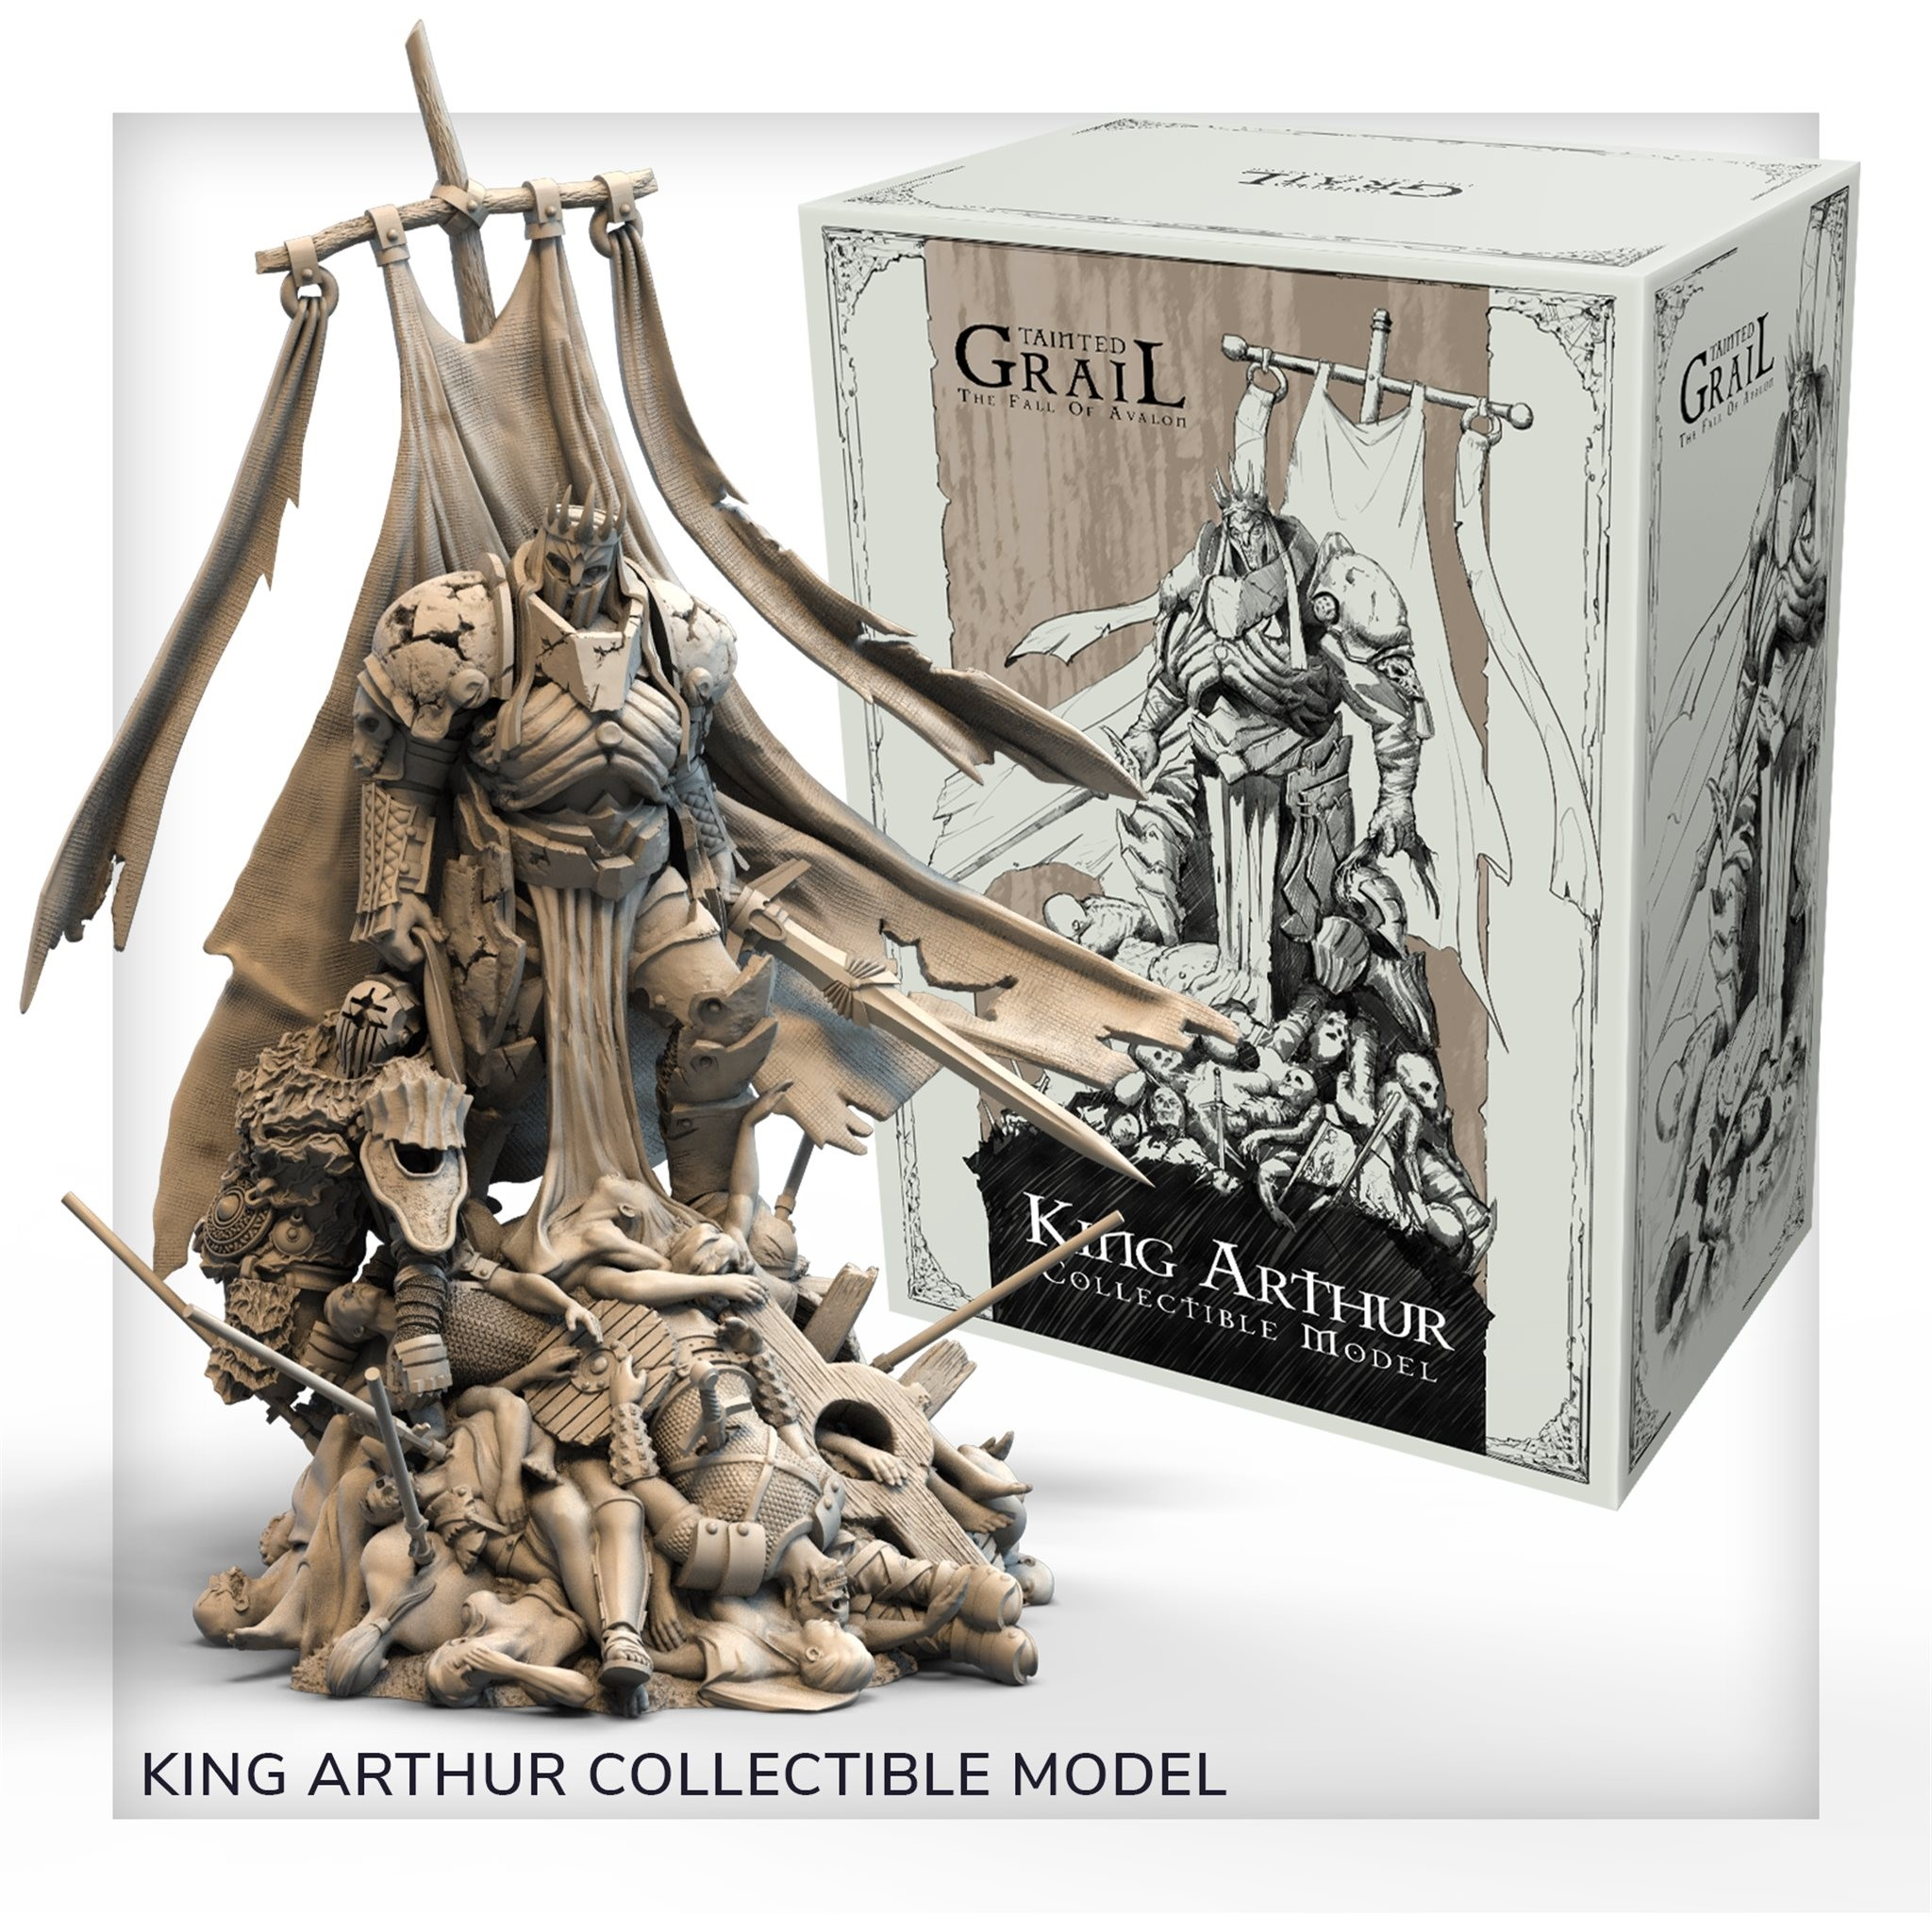 Tainted Grail: The Fall of Avalon King Arthur (Plastic)